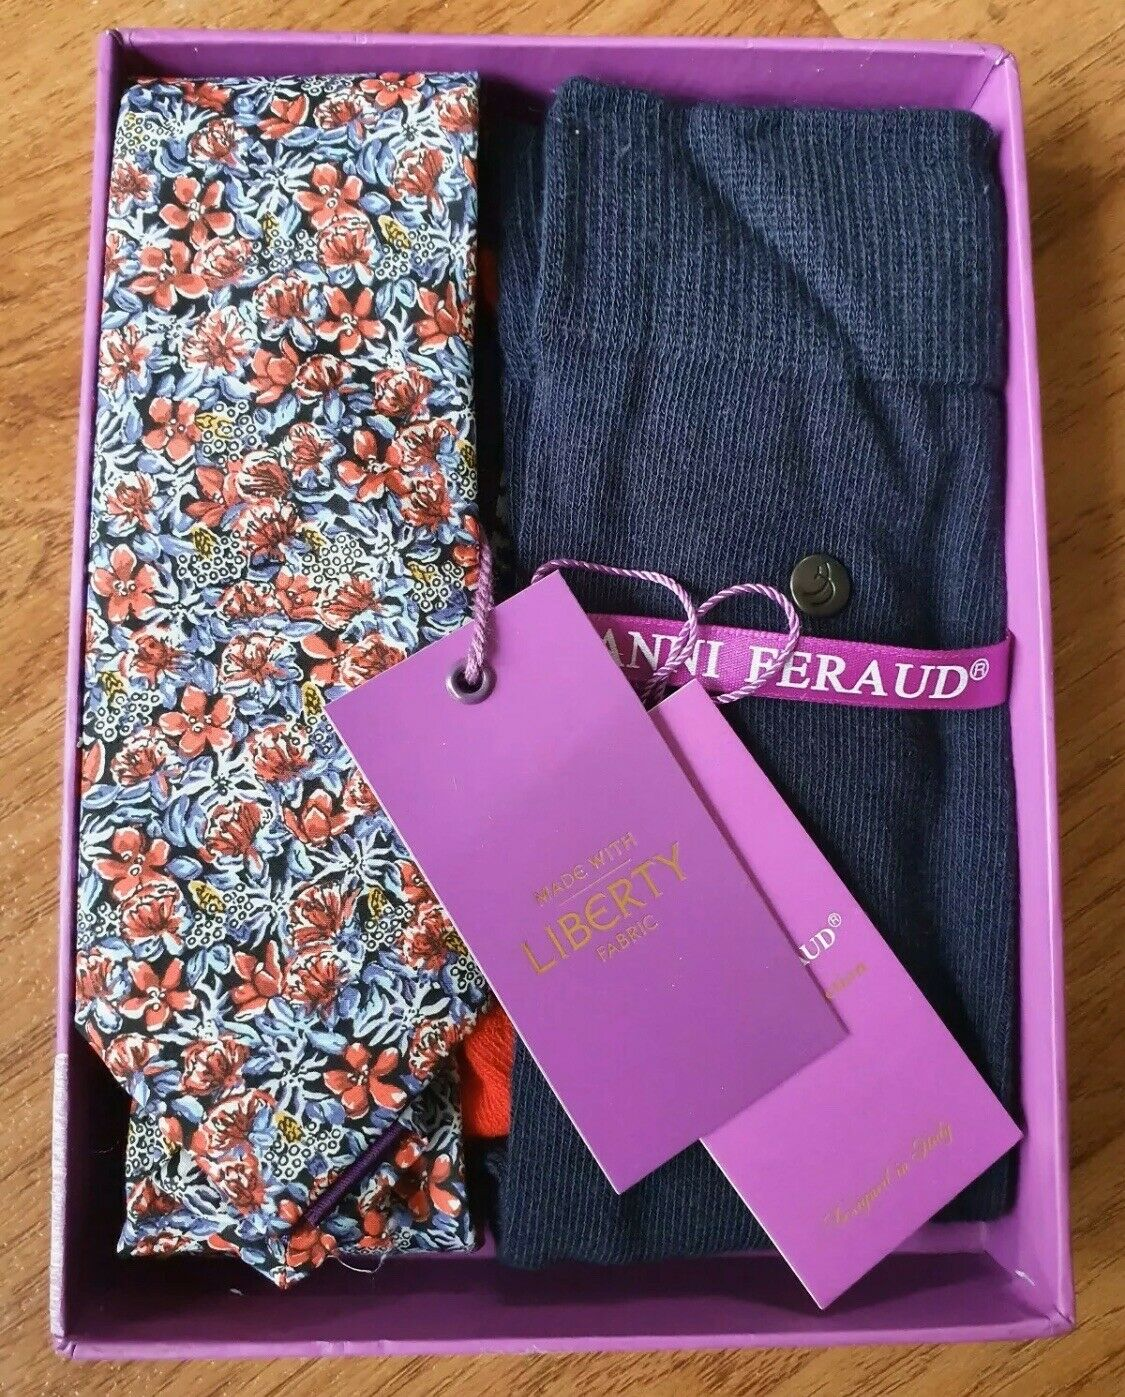 Gianni Feraud Liberty Floral Print Tie & Socks Gift Set Blue Red Cotton Rrp